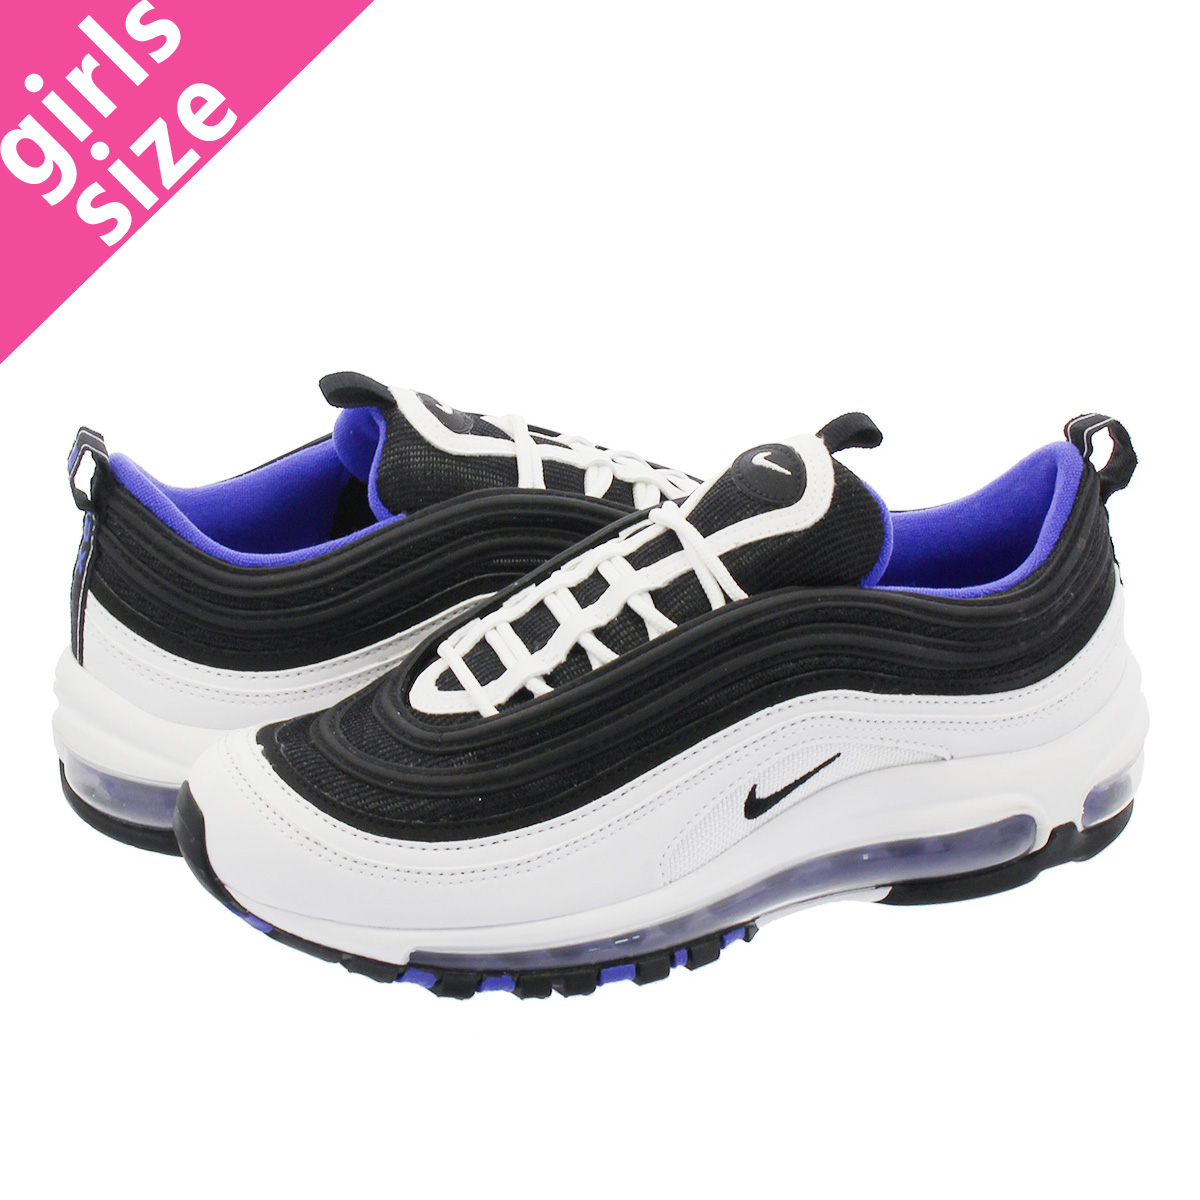 7540915d27 ... best price nike air max 97 gs kie ney amax 97 gs white black persian  violet